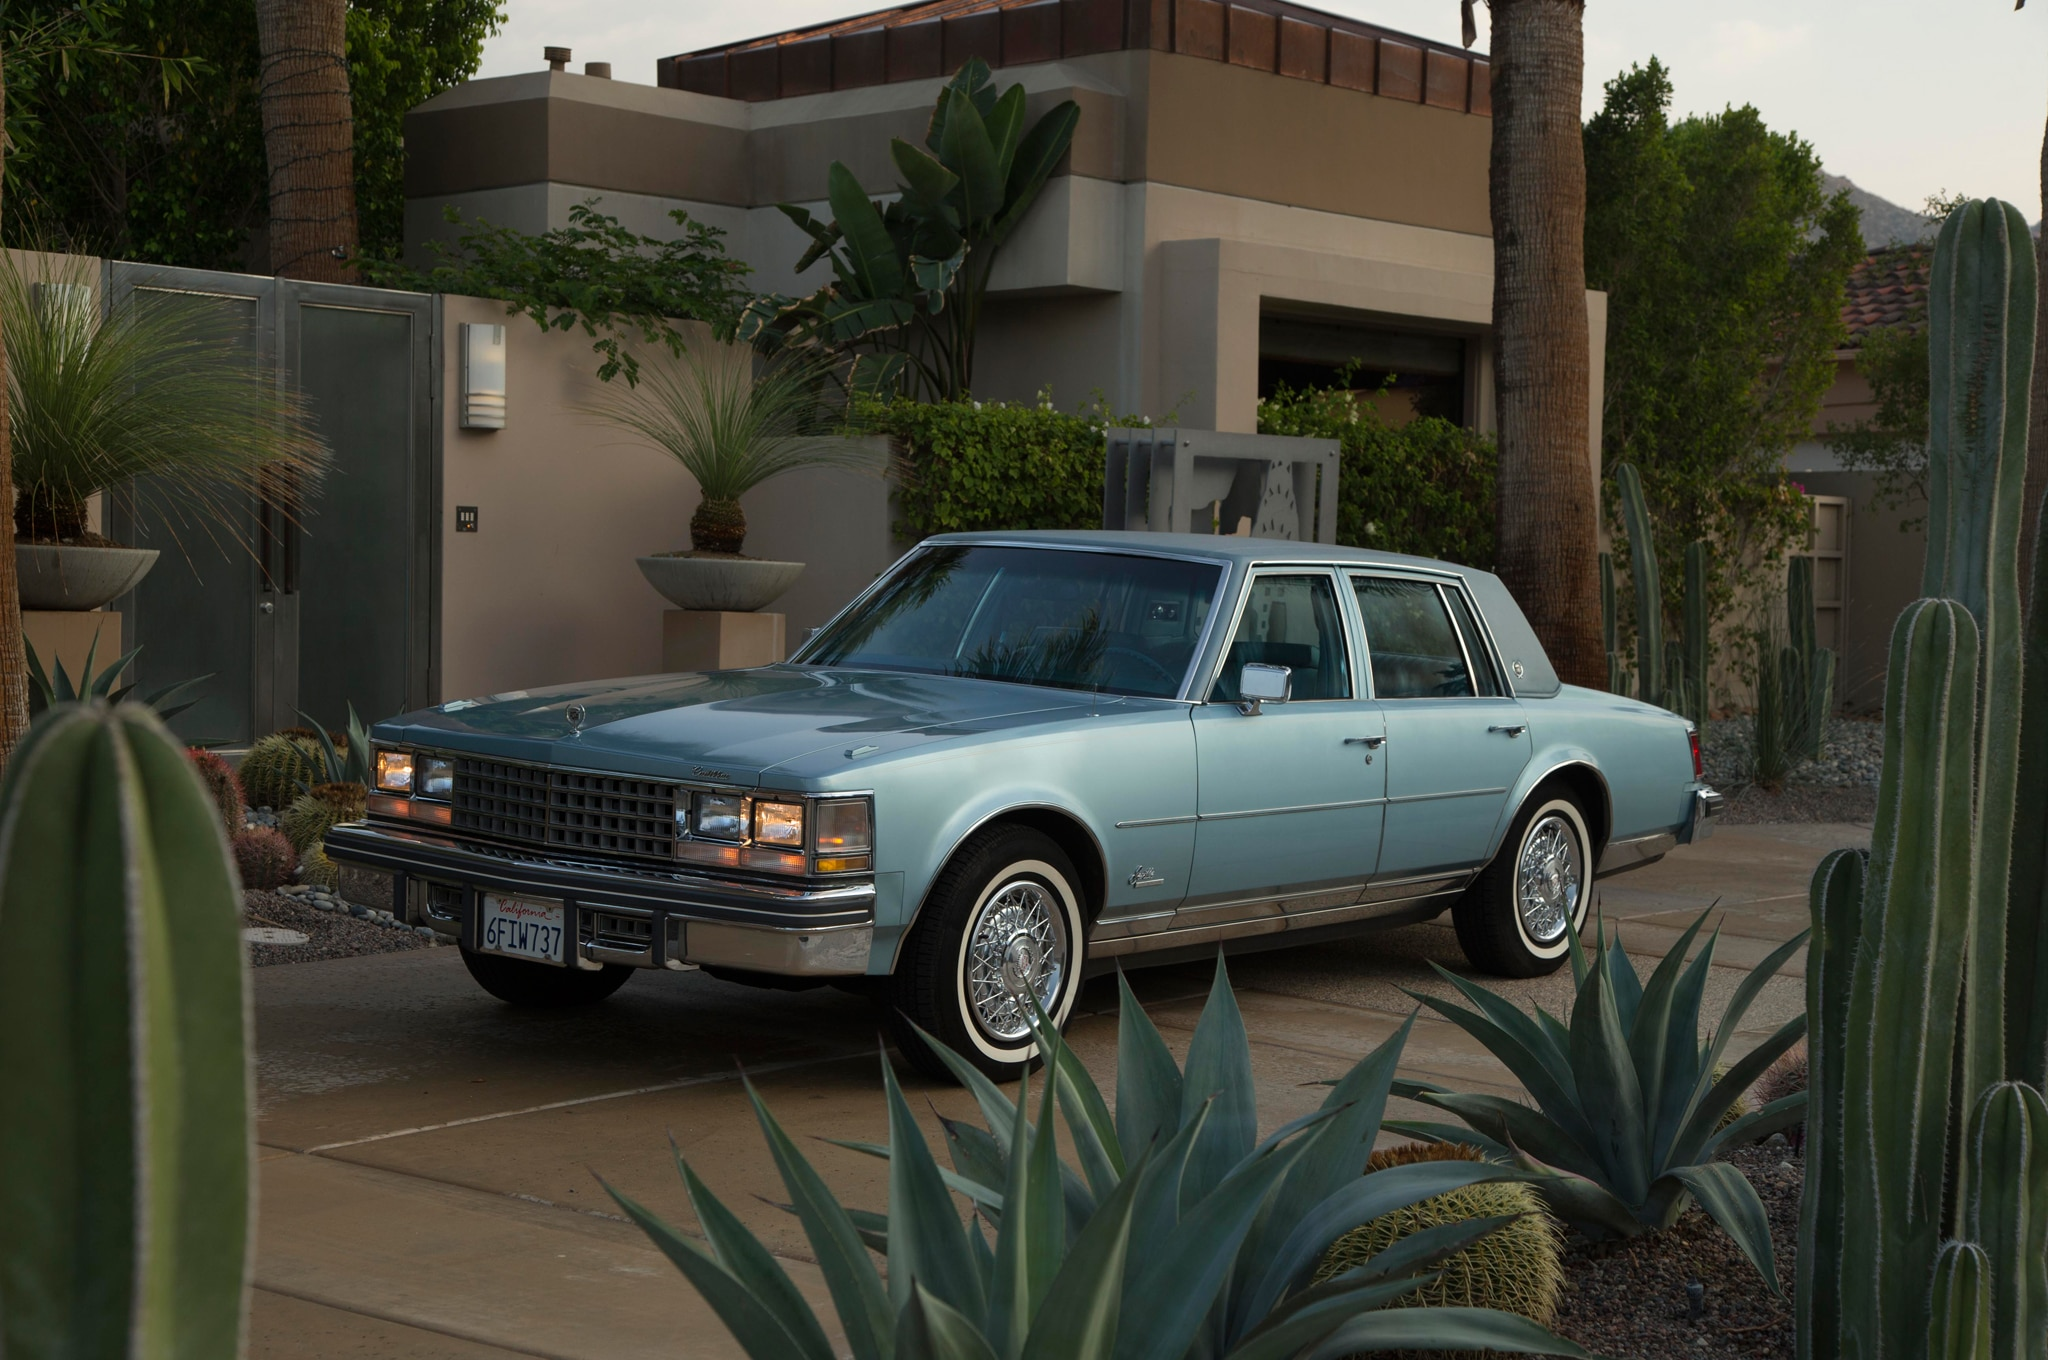 Collectible Classic: 1976-1979 Cadillac Seville